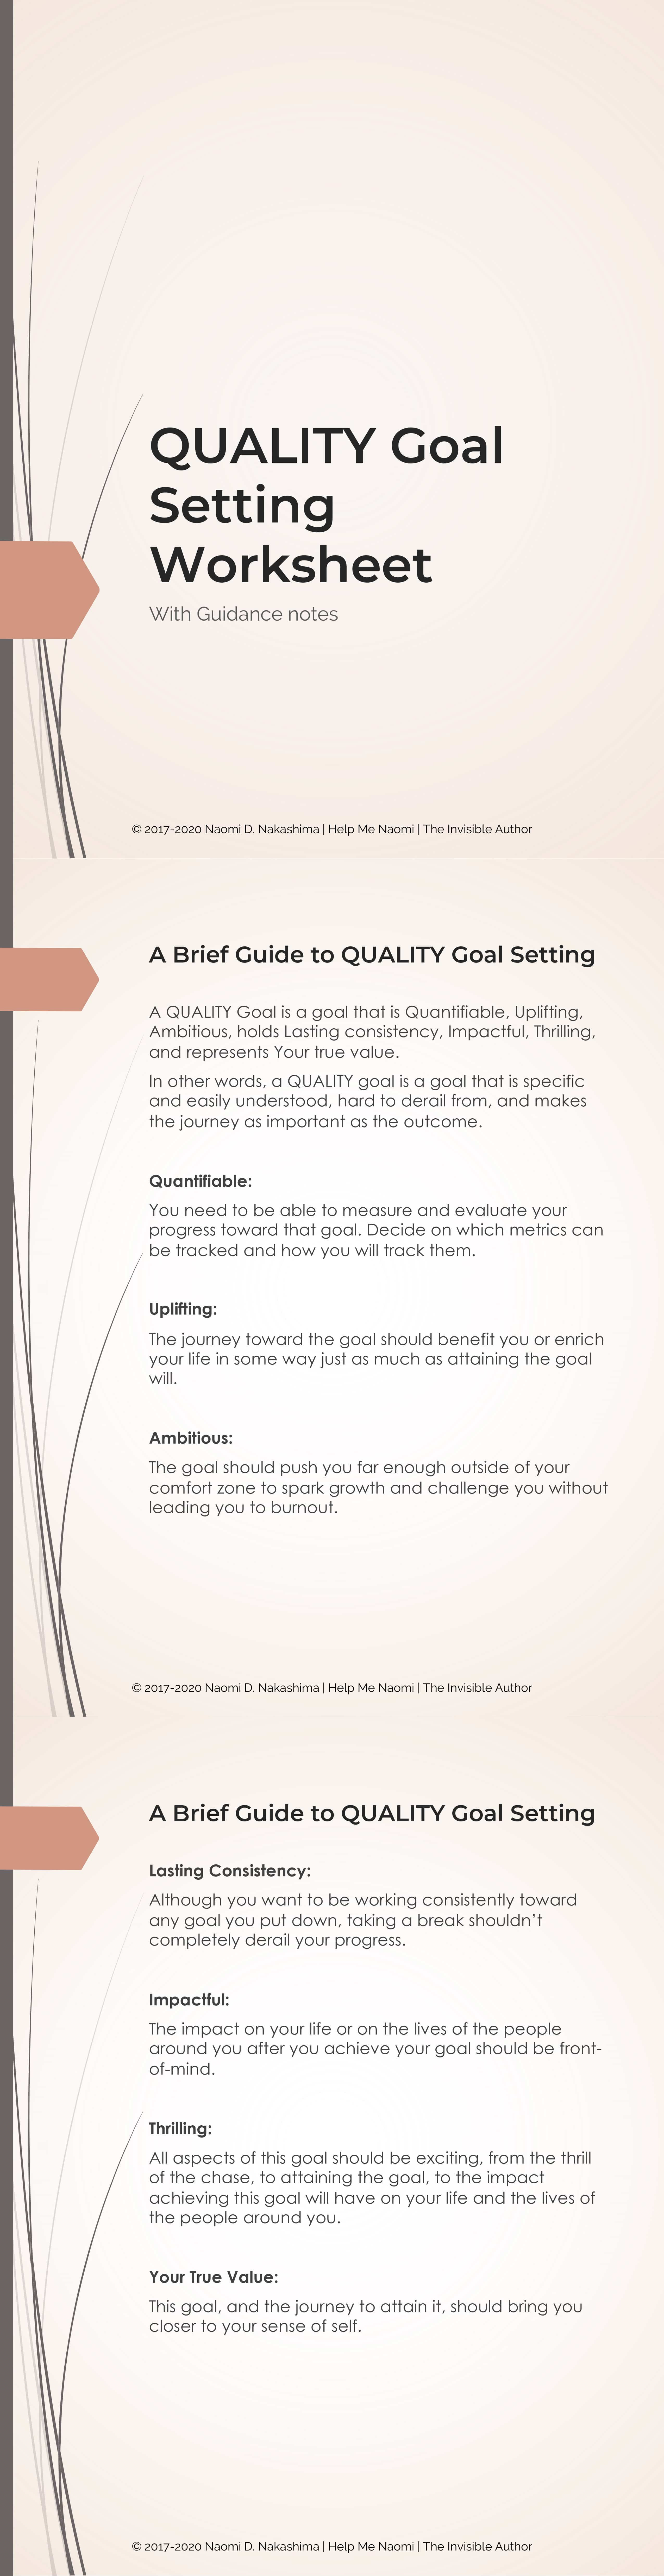 QUALITY Goal Setting Worksheets Preview